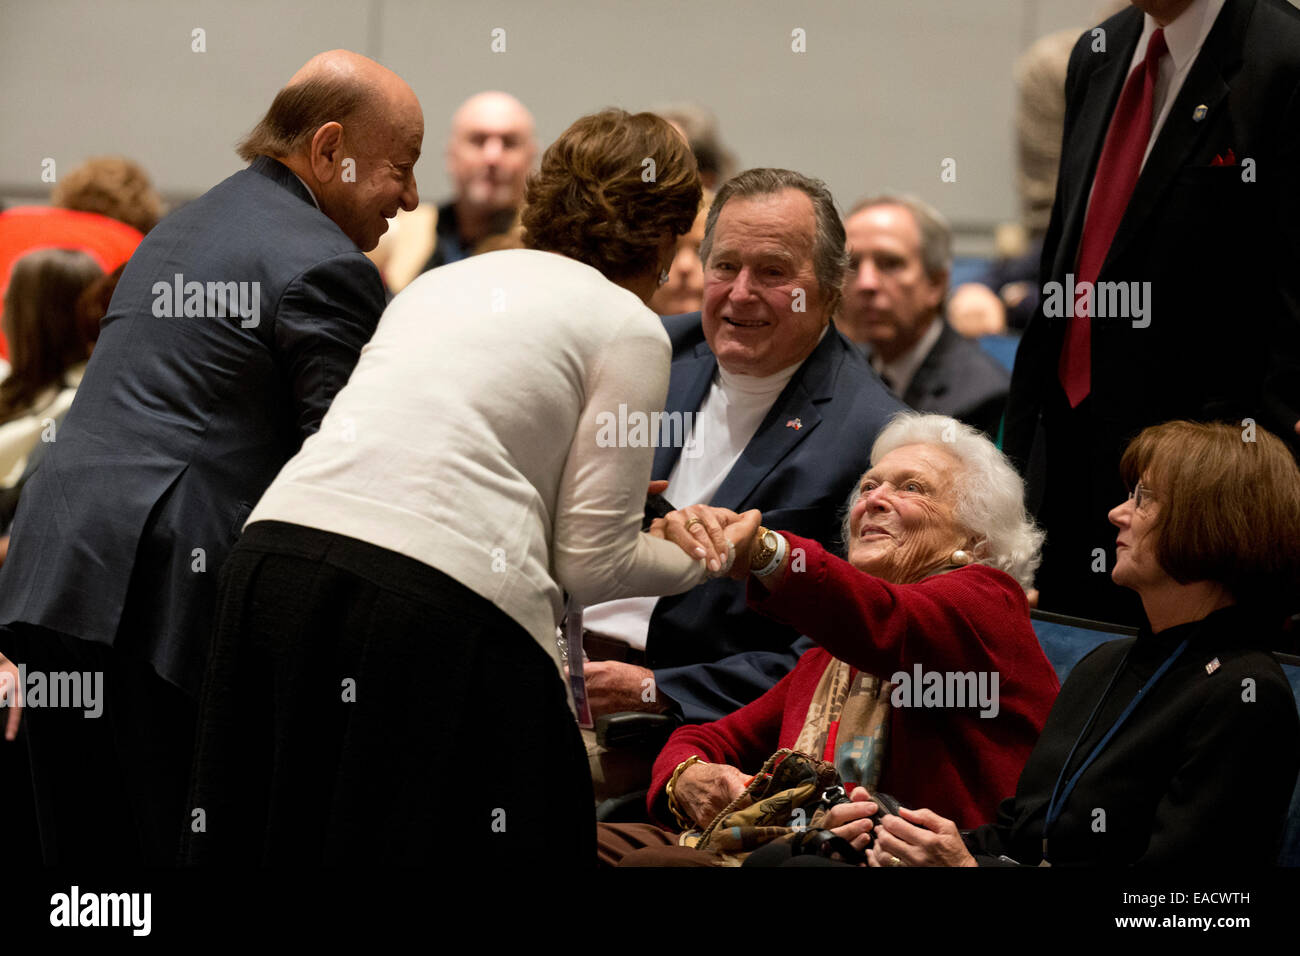 College Station, Texas, USA. 11th November, 2014. Former U.S. President George H. W. Bush greets guests while sitting - Stock Image